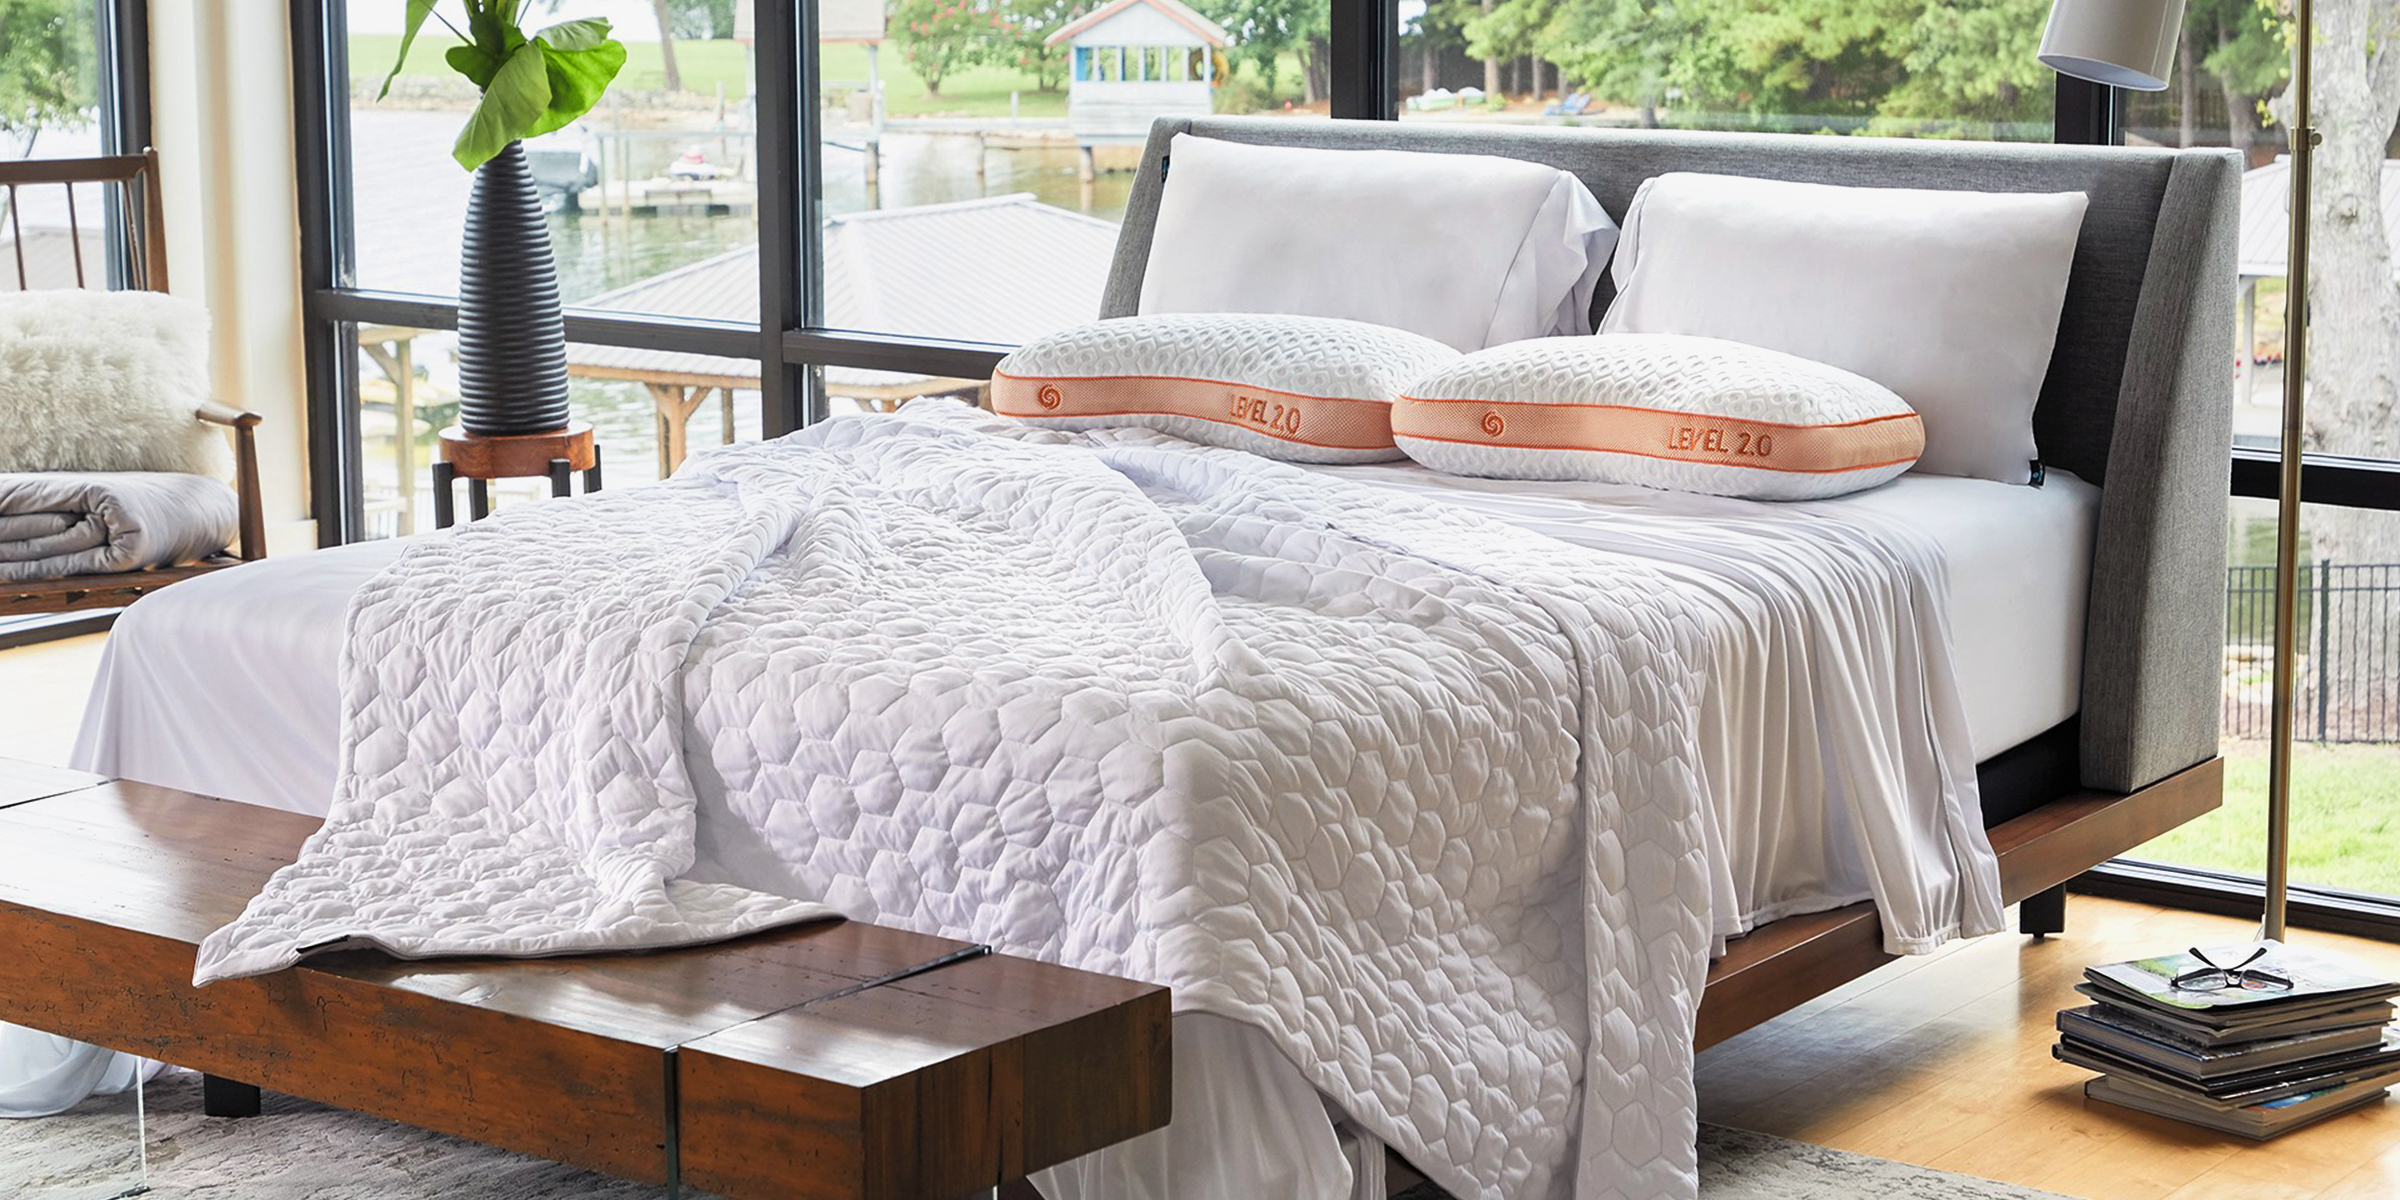 Best Cooling Mattresses And More For Hot Sleepers In 2021